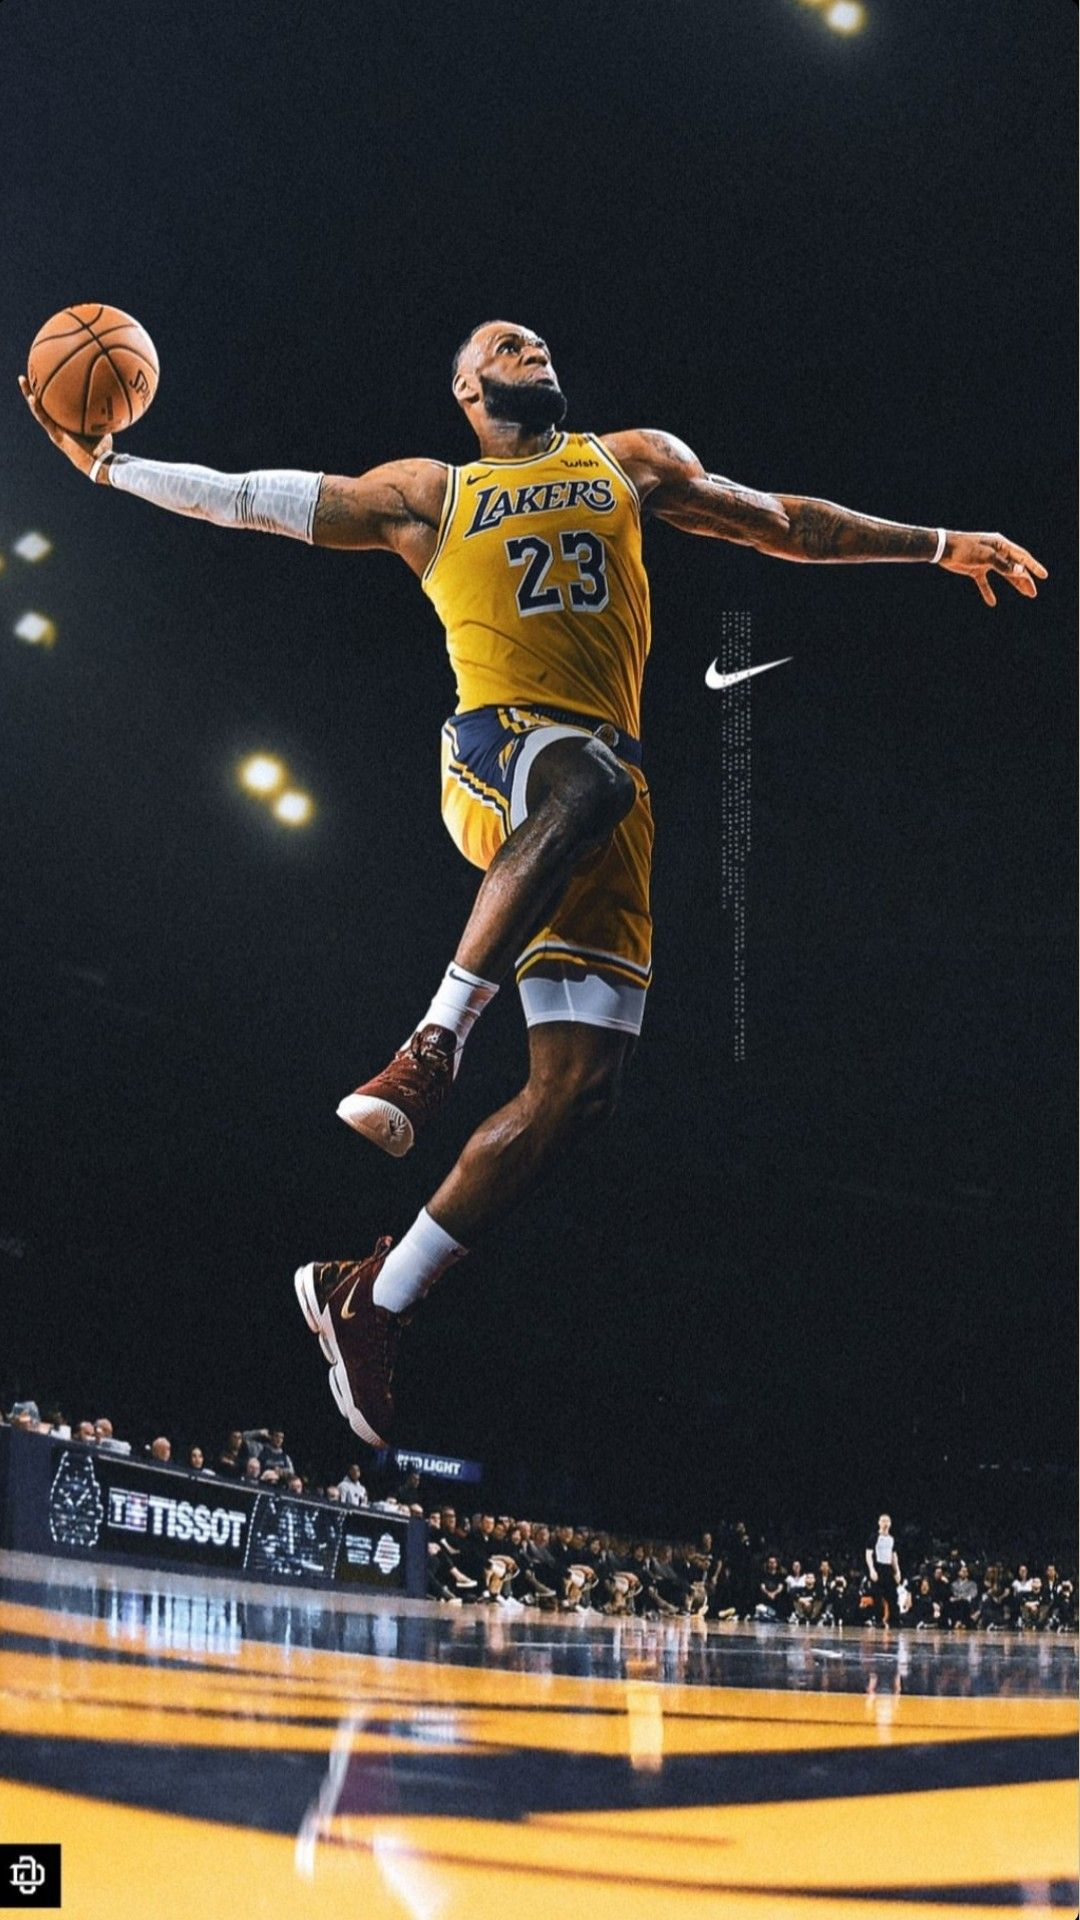 LeBron James wallpaper Arte de basquete, Basquetebol nba